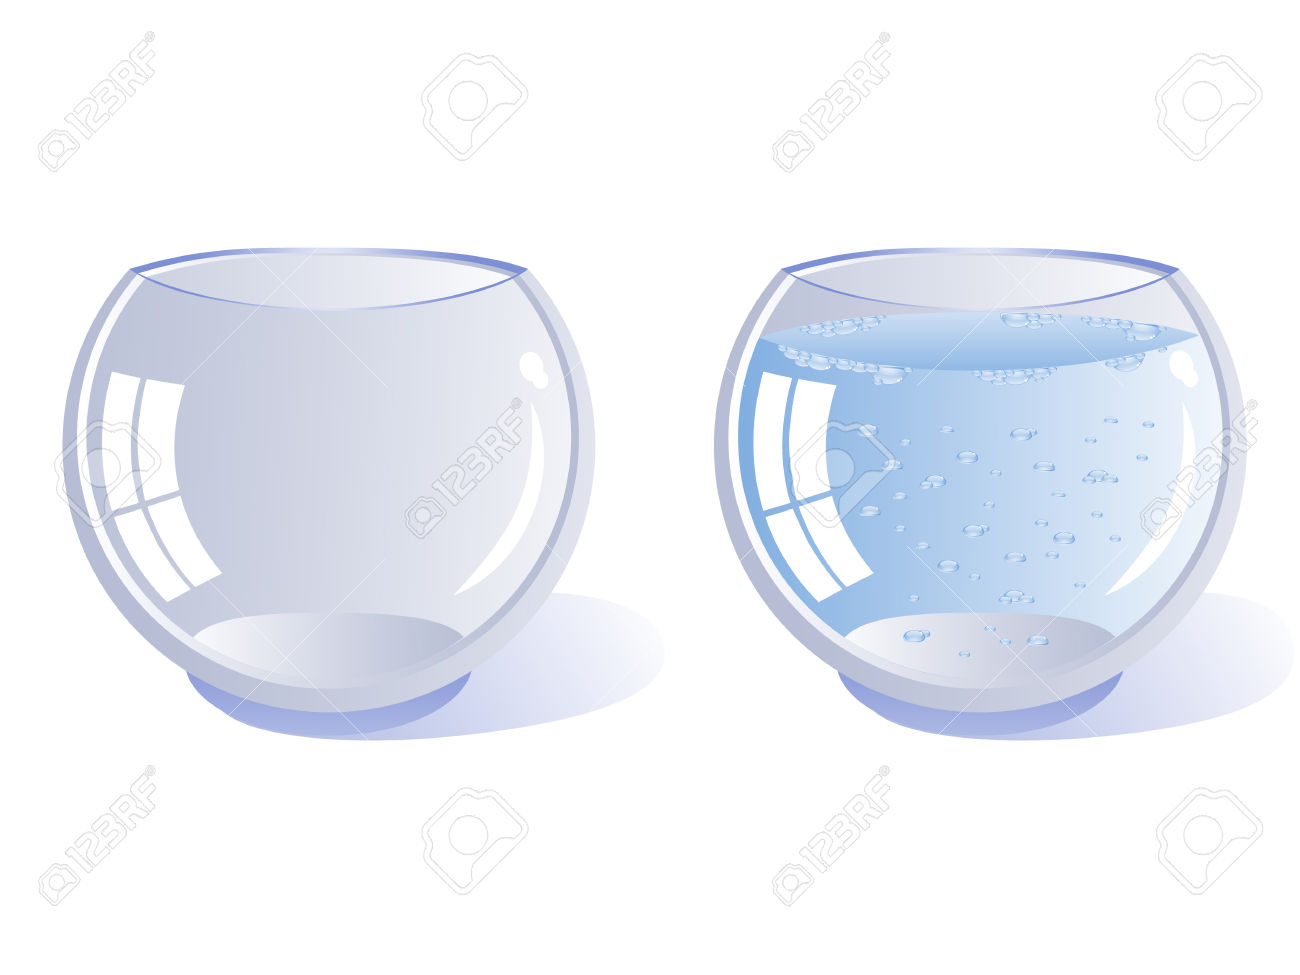 Two Transparent Glass Vessel Rounded. One Empty And One Filled.